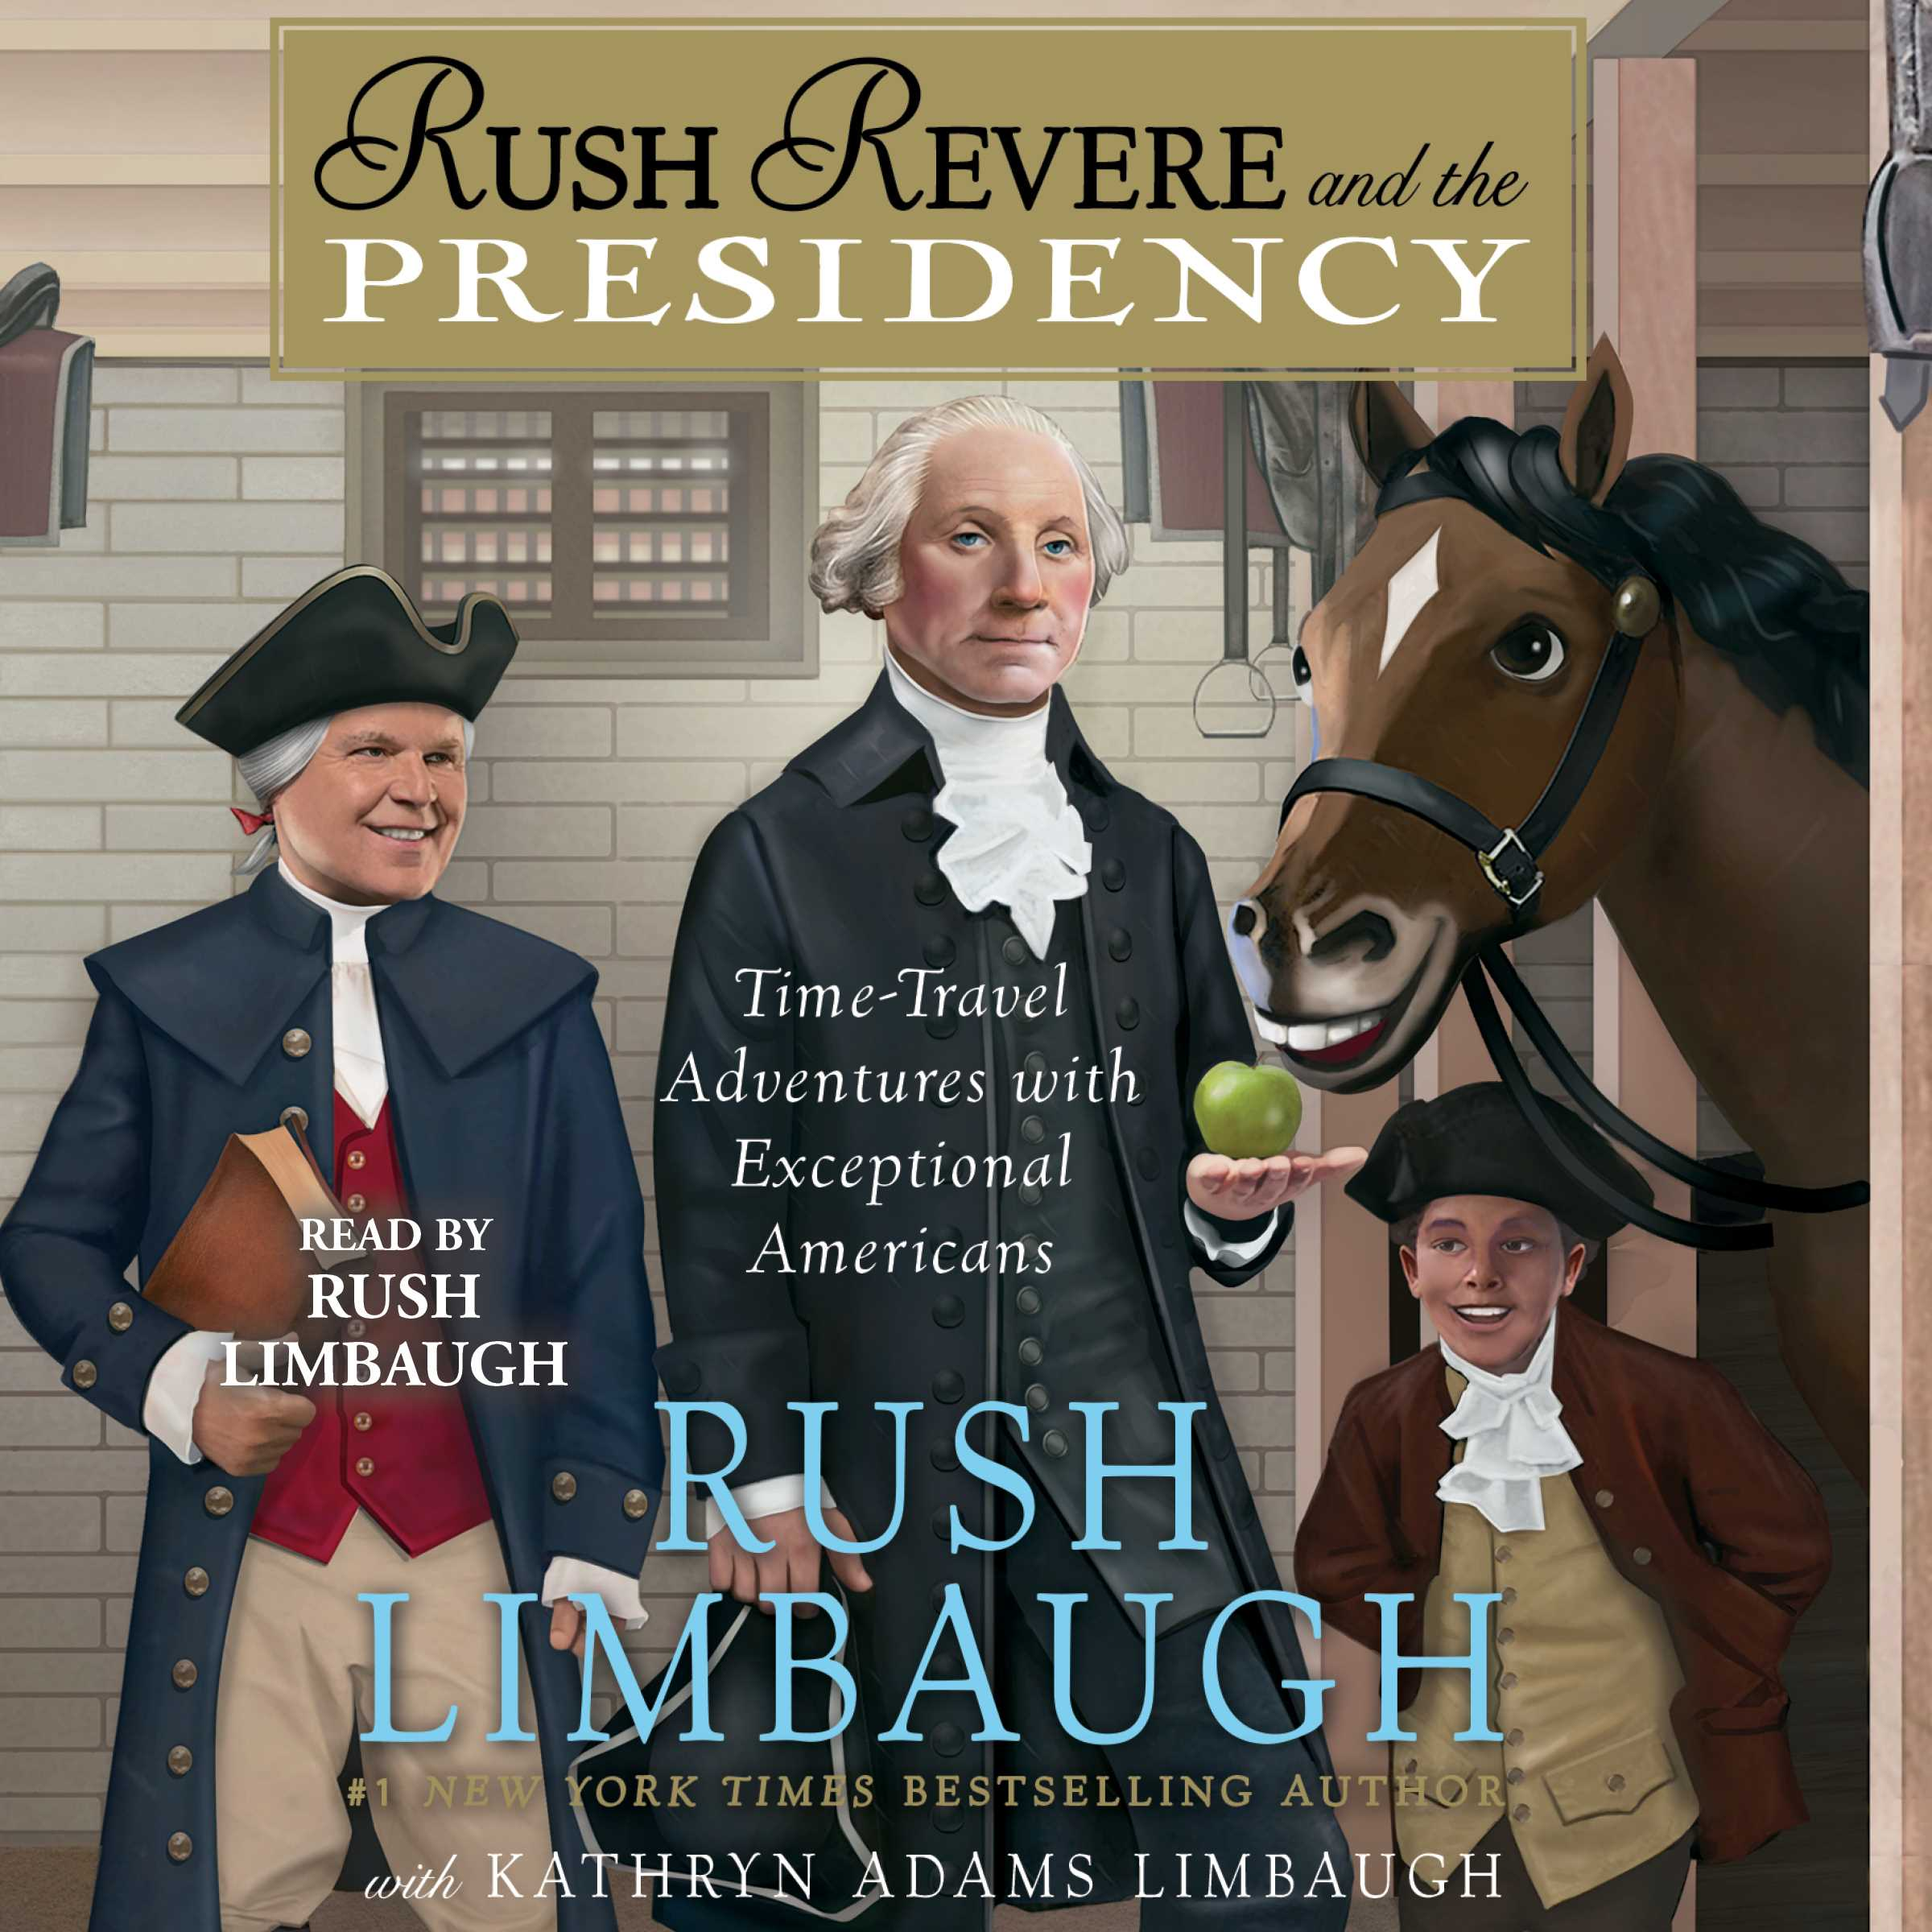 Rush revere and the presidency 9781508227465 hr